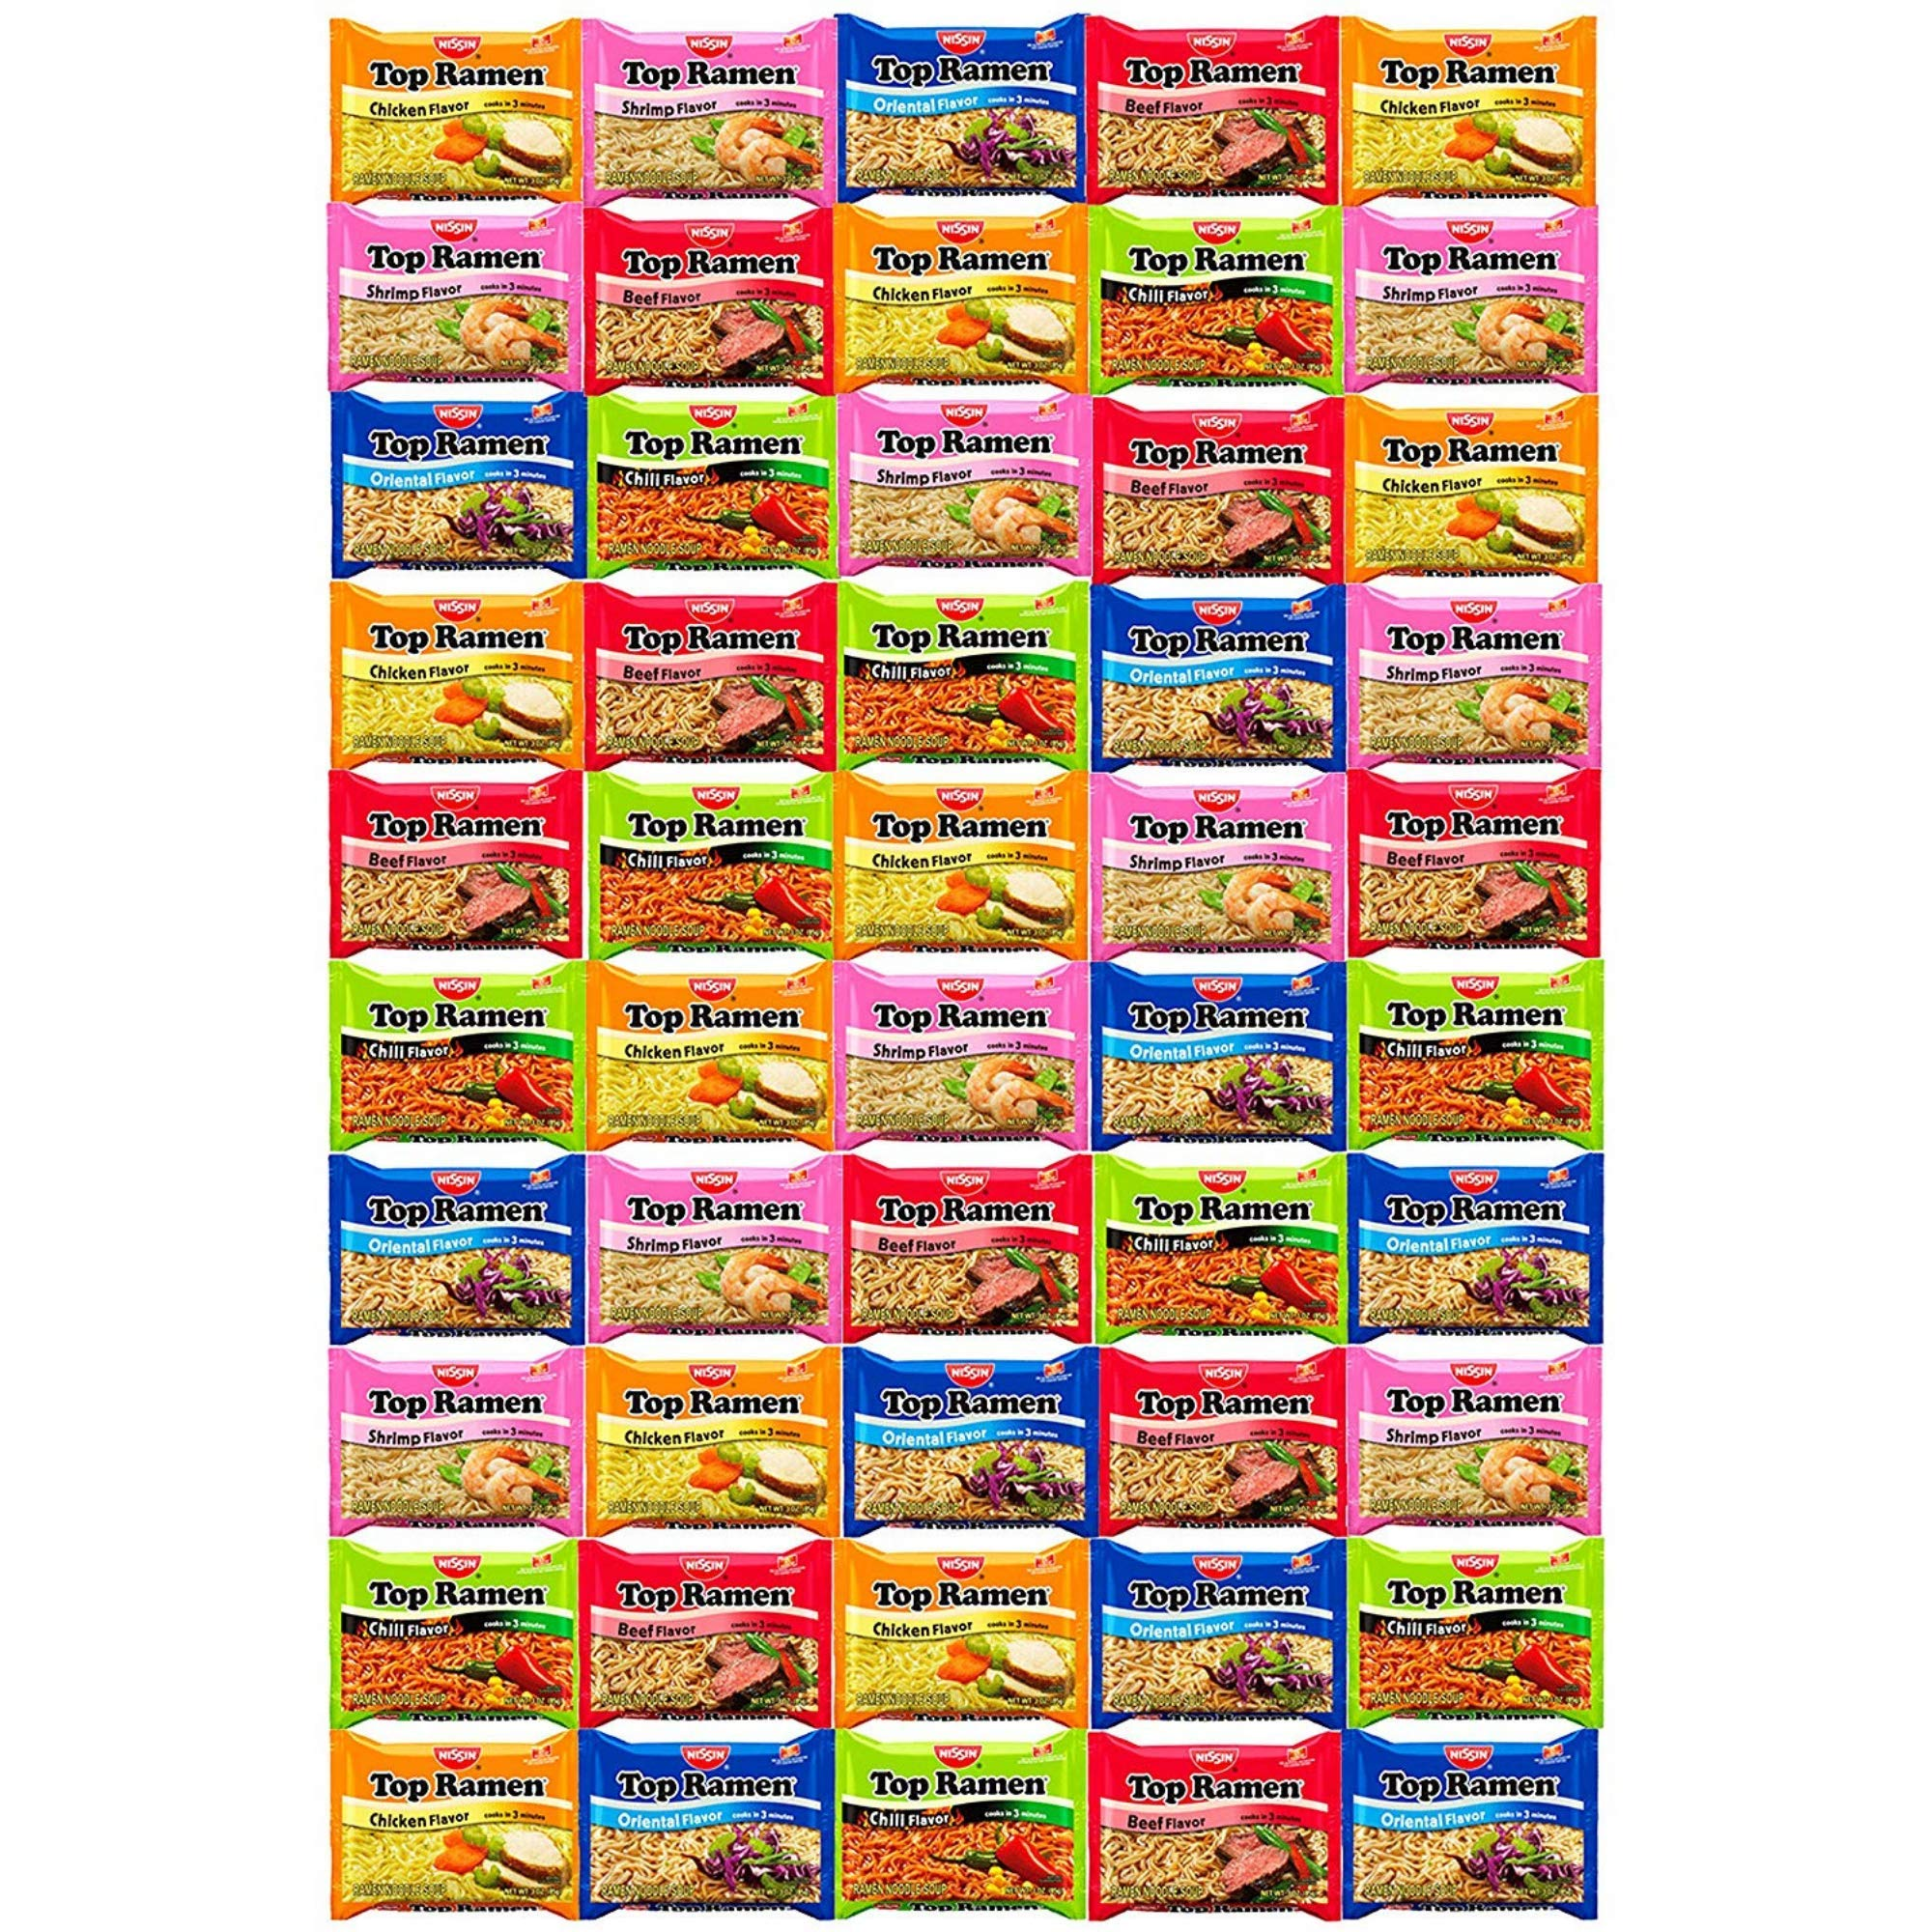 Stubby Pubby Nissin Top Ramen Noodles 5 Different Flavors Variety Sampler Pack (50 Count) by Snacks by Stubby Pubby